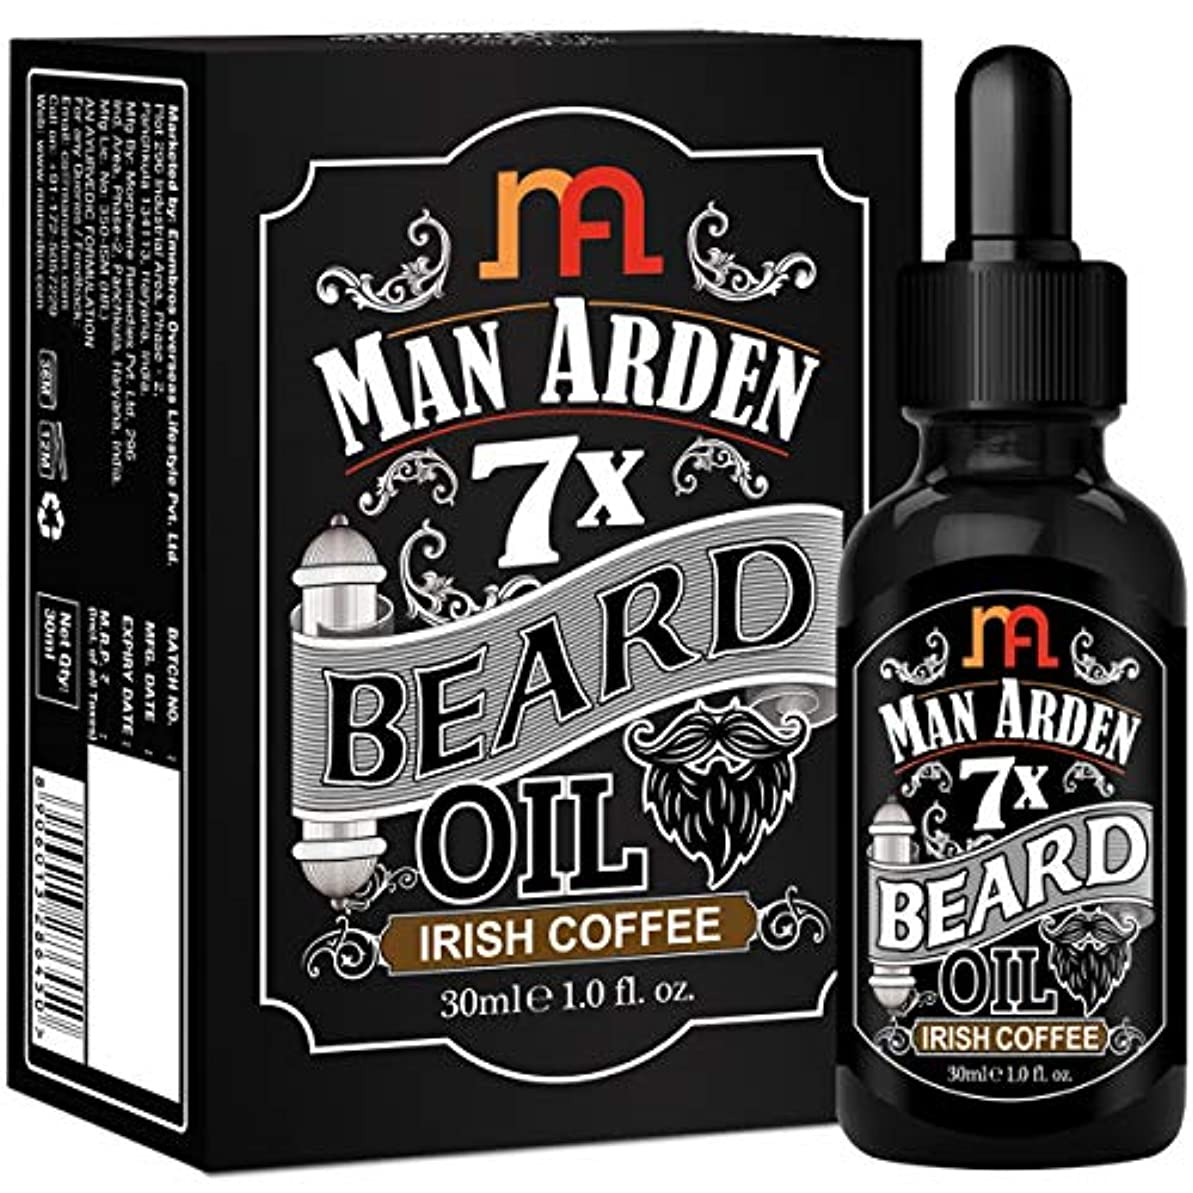 ベスト評判宙返りMan Arden 7X Beard Oil 30ml (Irish Coffee) - 7 Premium Oils For Beard Growth & Nourishment